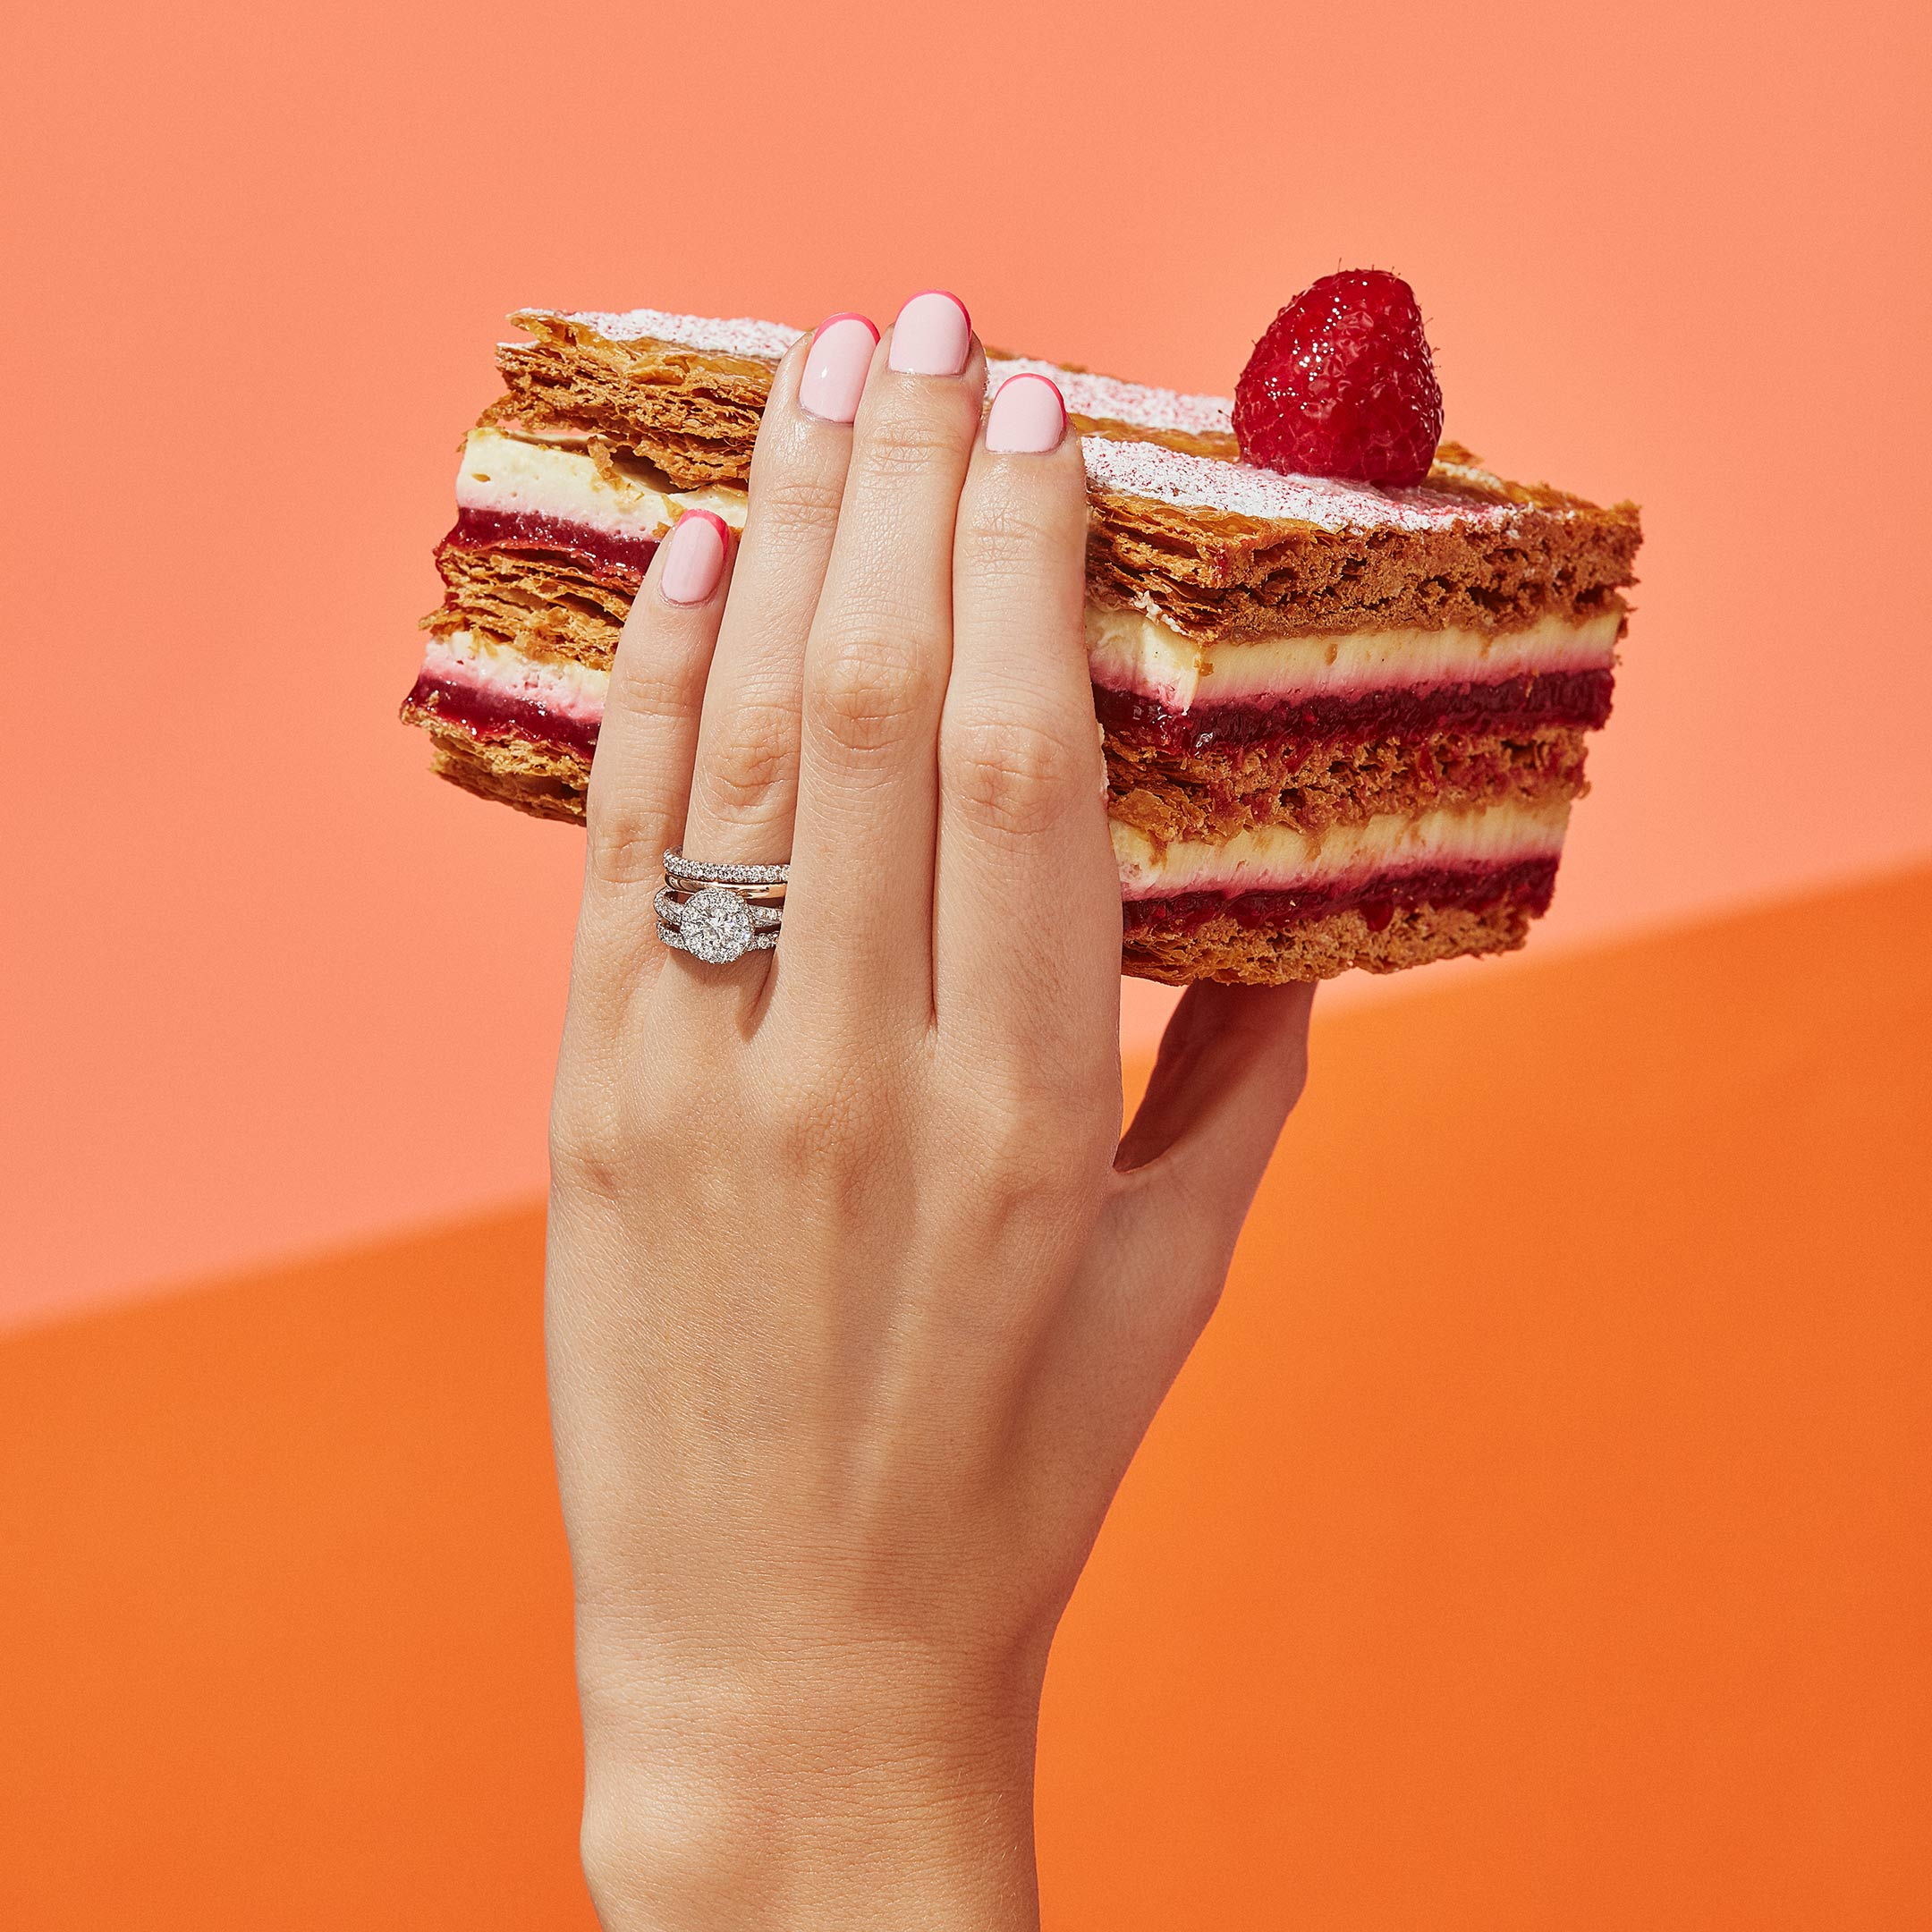 Camille Round Brilliant Seamless Halo® Engagement Ring with a twisted diamond pavé band in Platinum Hand with Cake Lifestyle by Oui by Jean Dousset